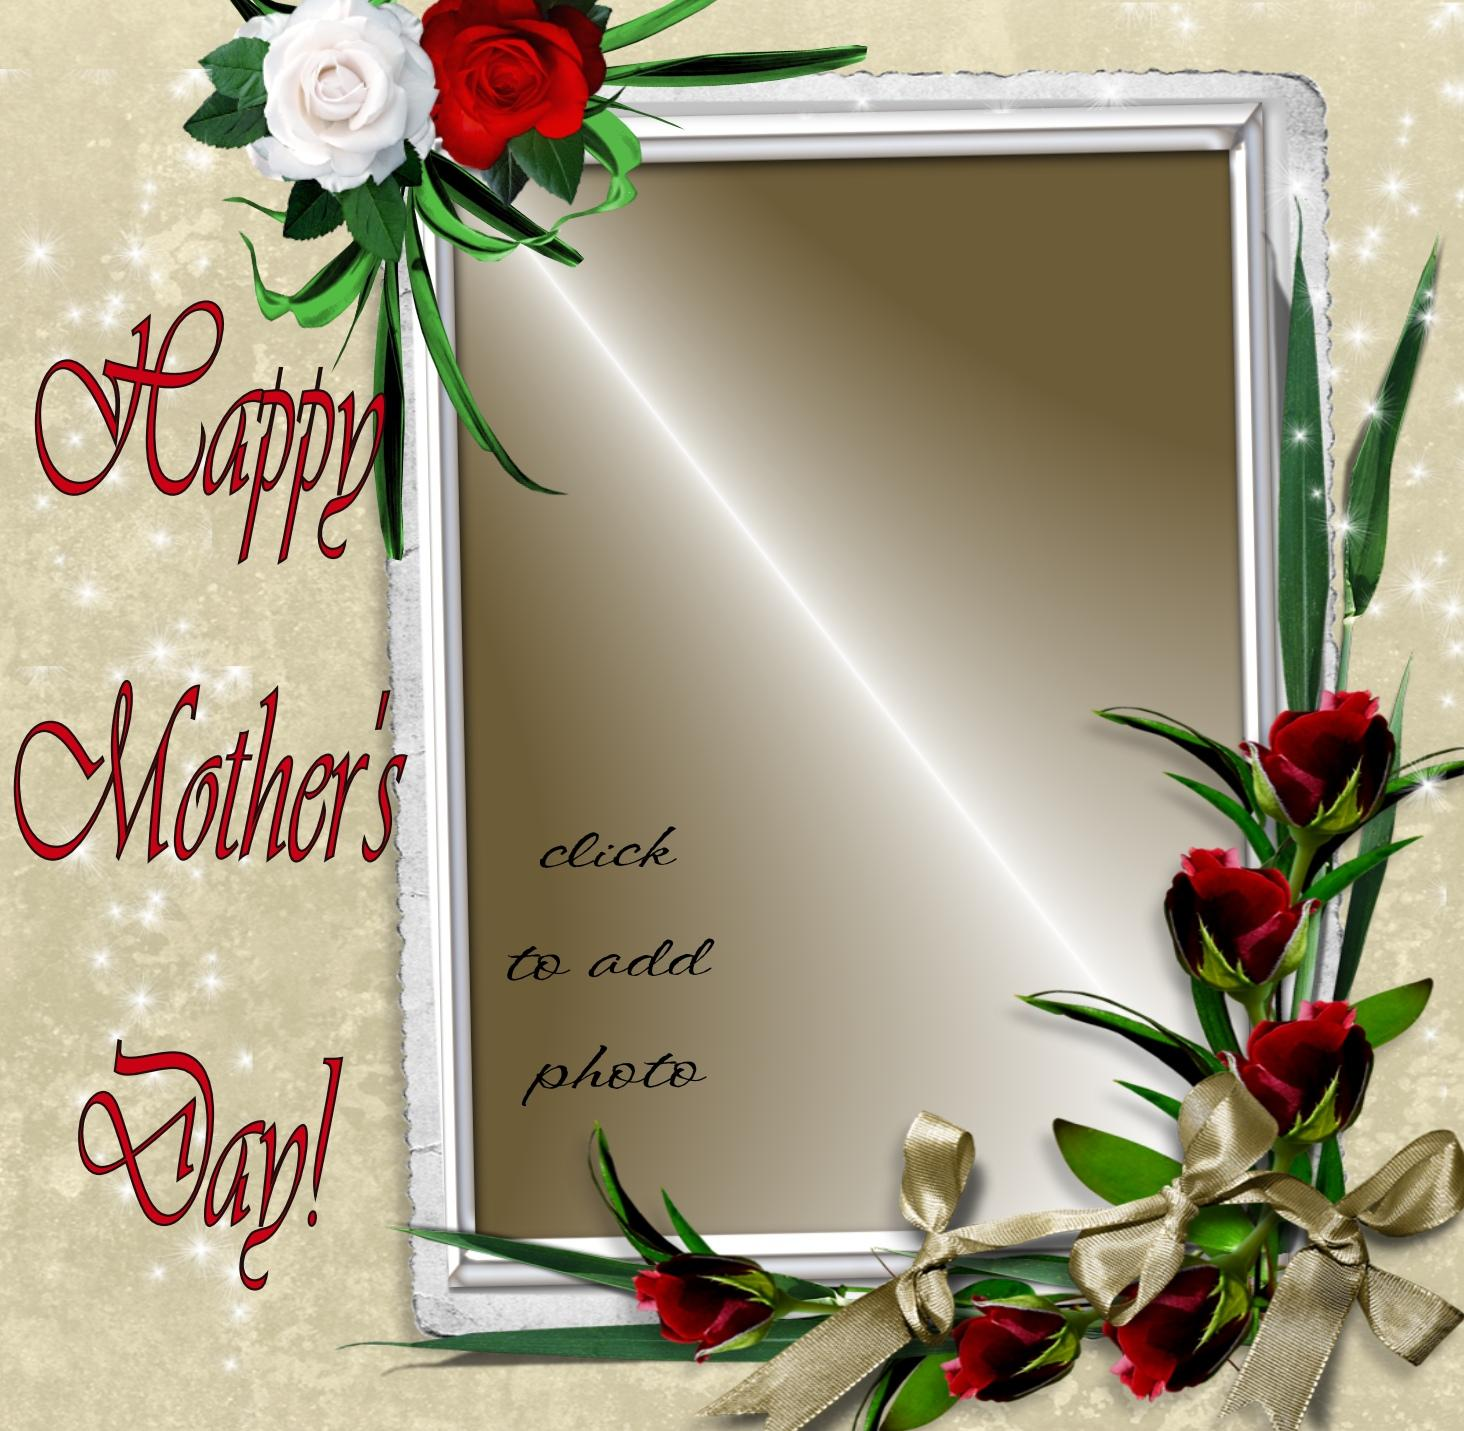 Imikimi Zo - Mother\'s Day Frames - 2010 April - Mothers Day Frame ...